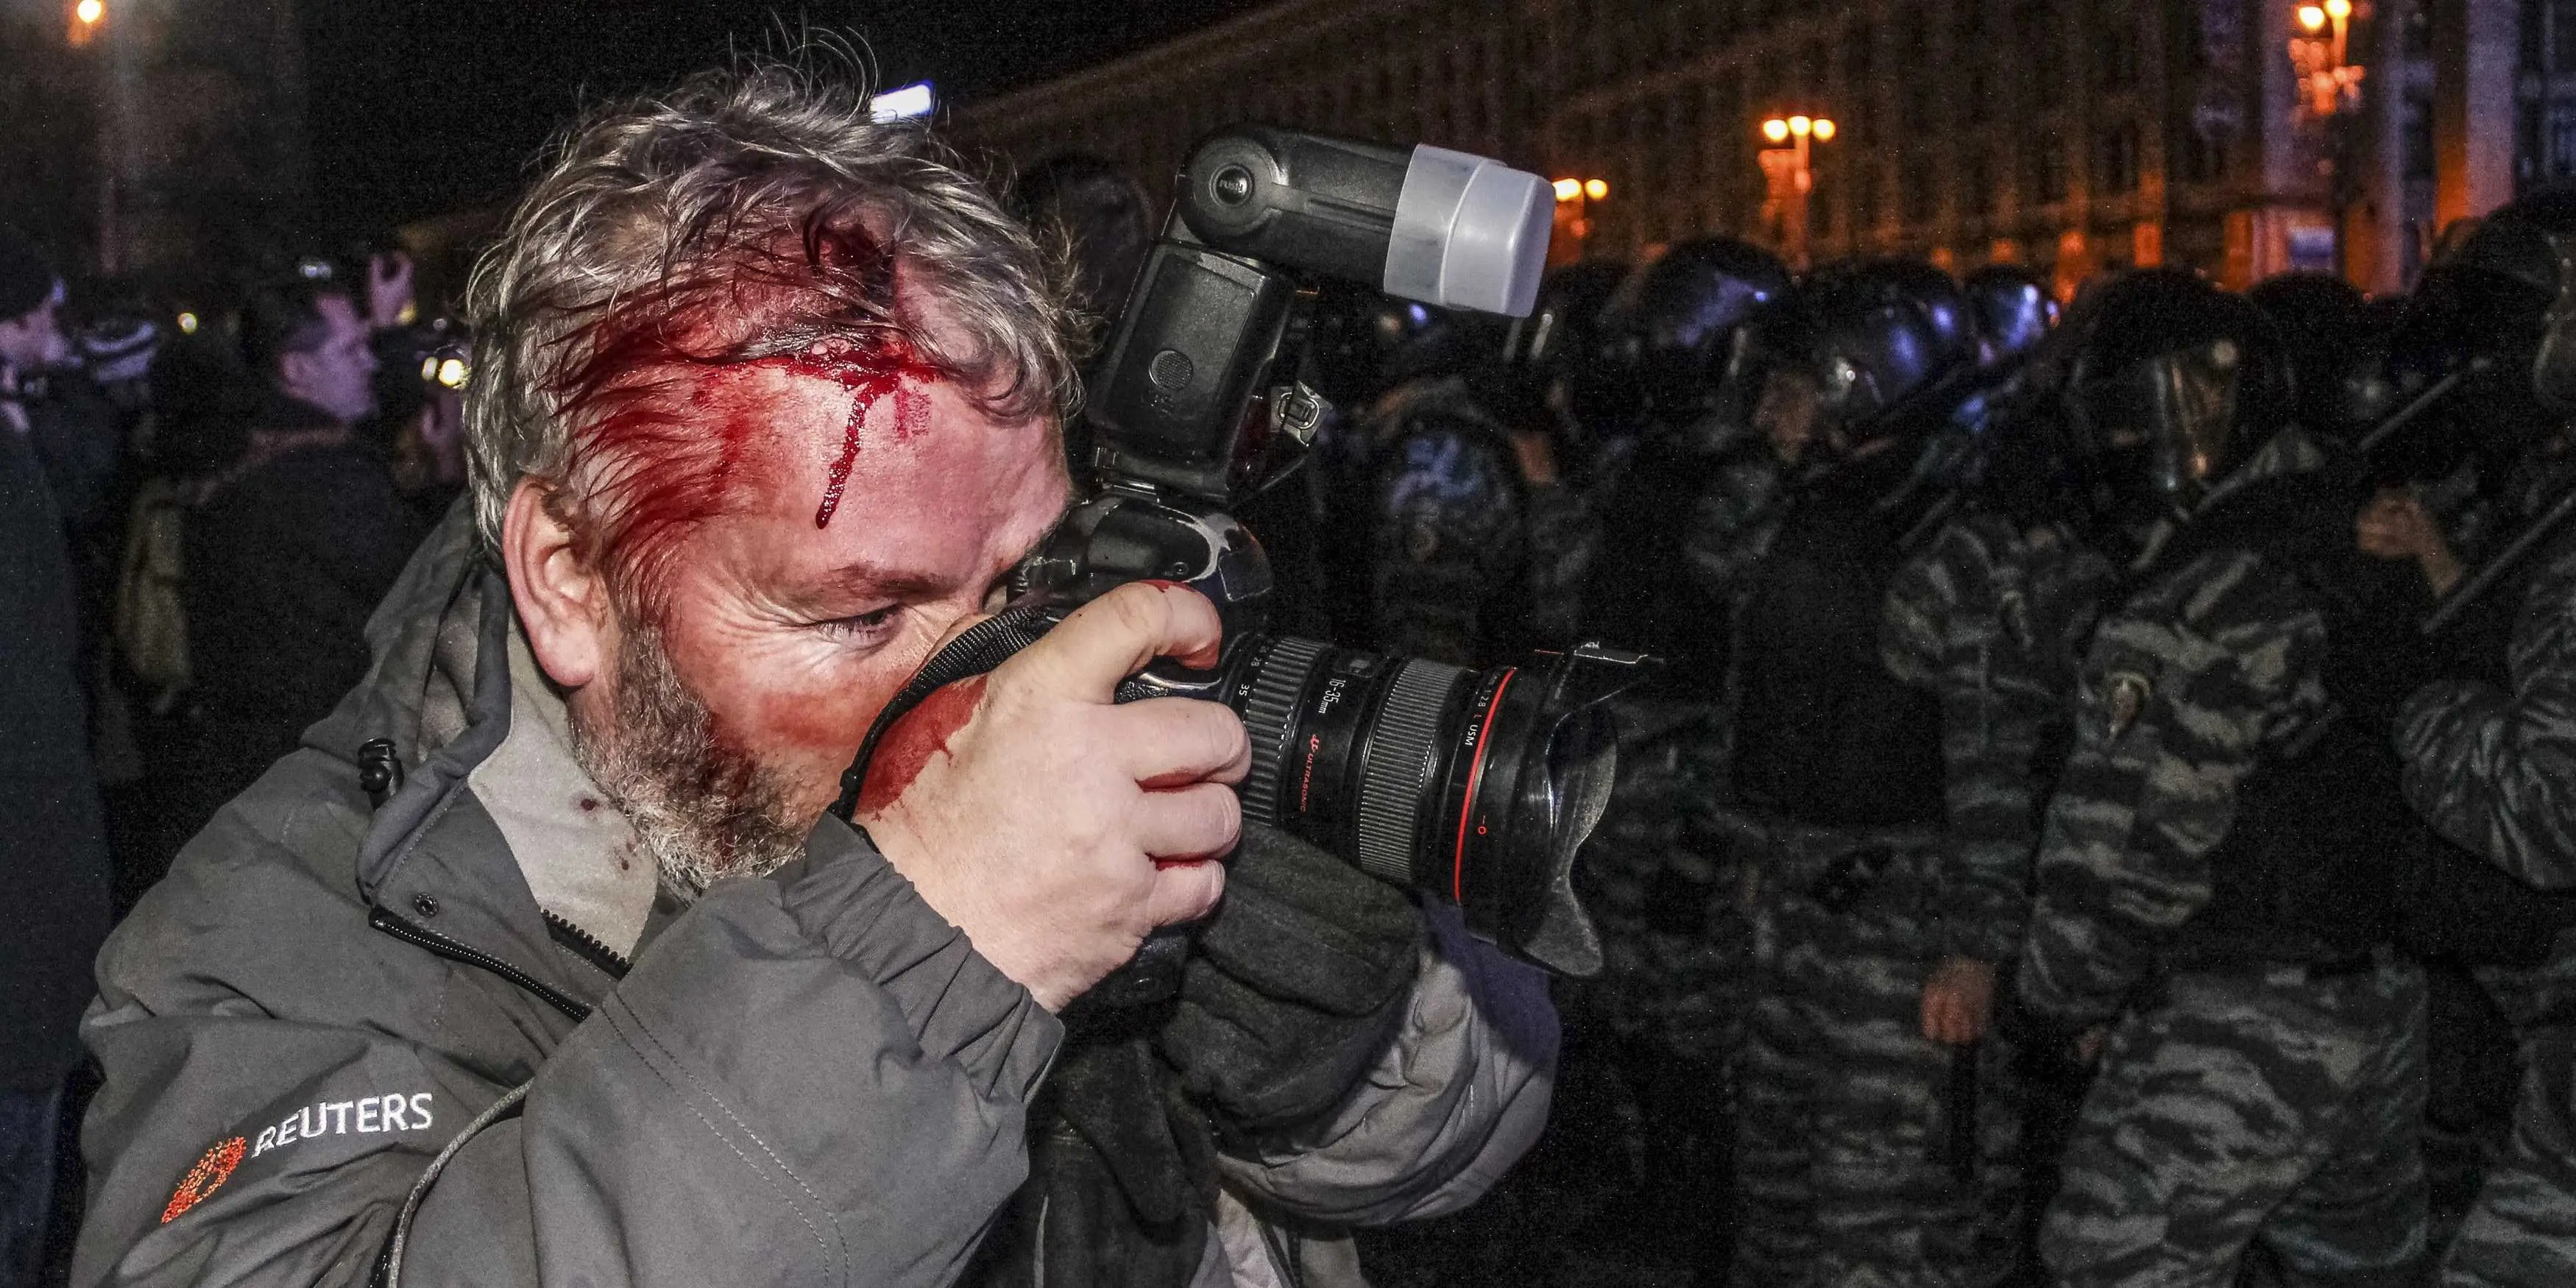 Reuters Photographer Hurt